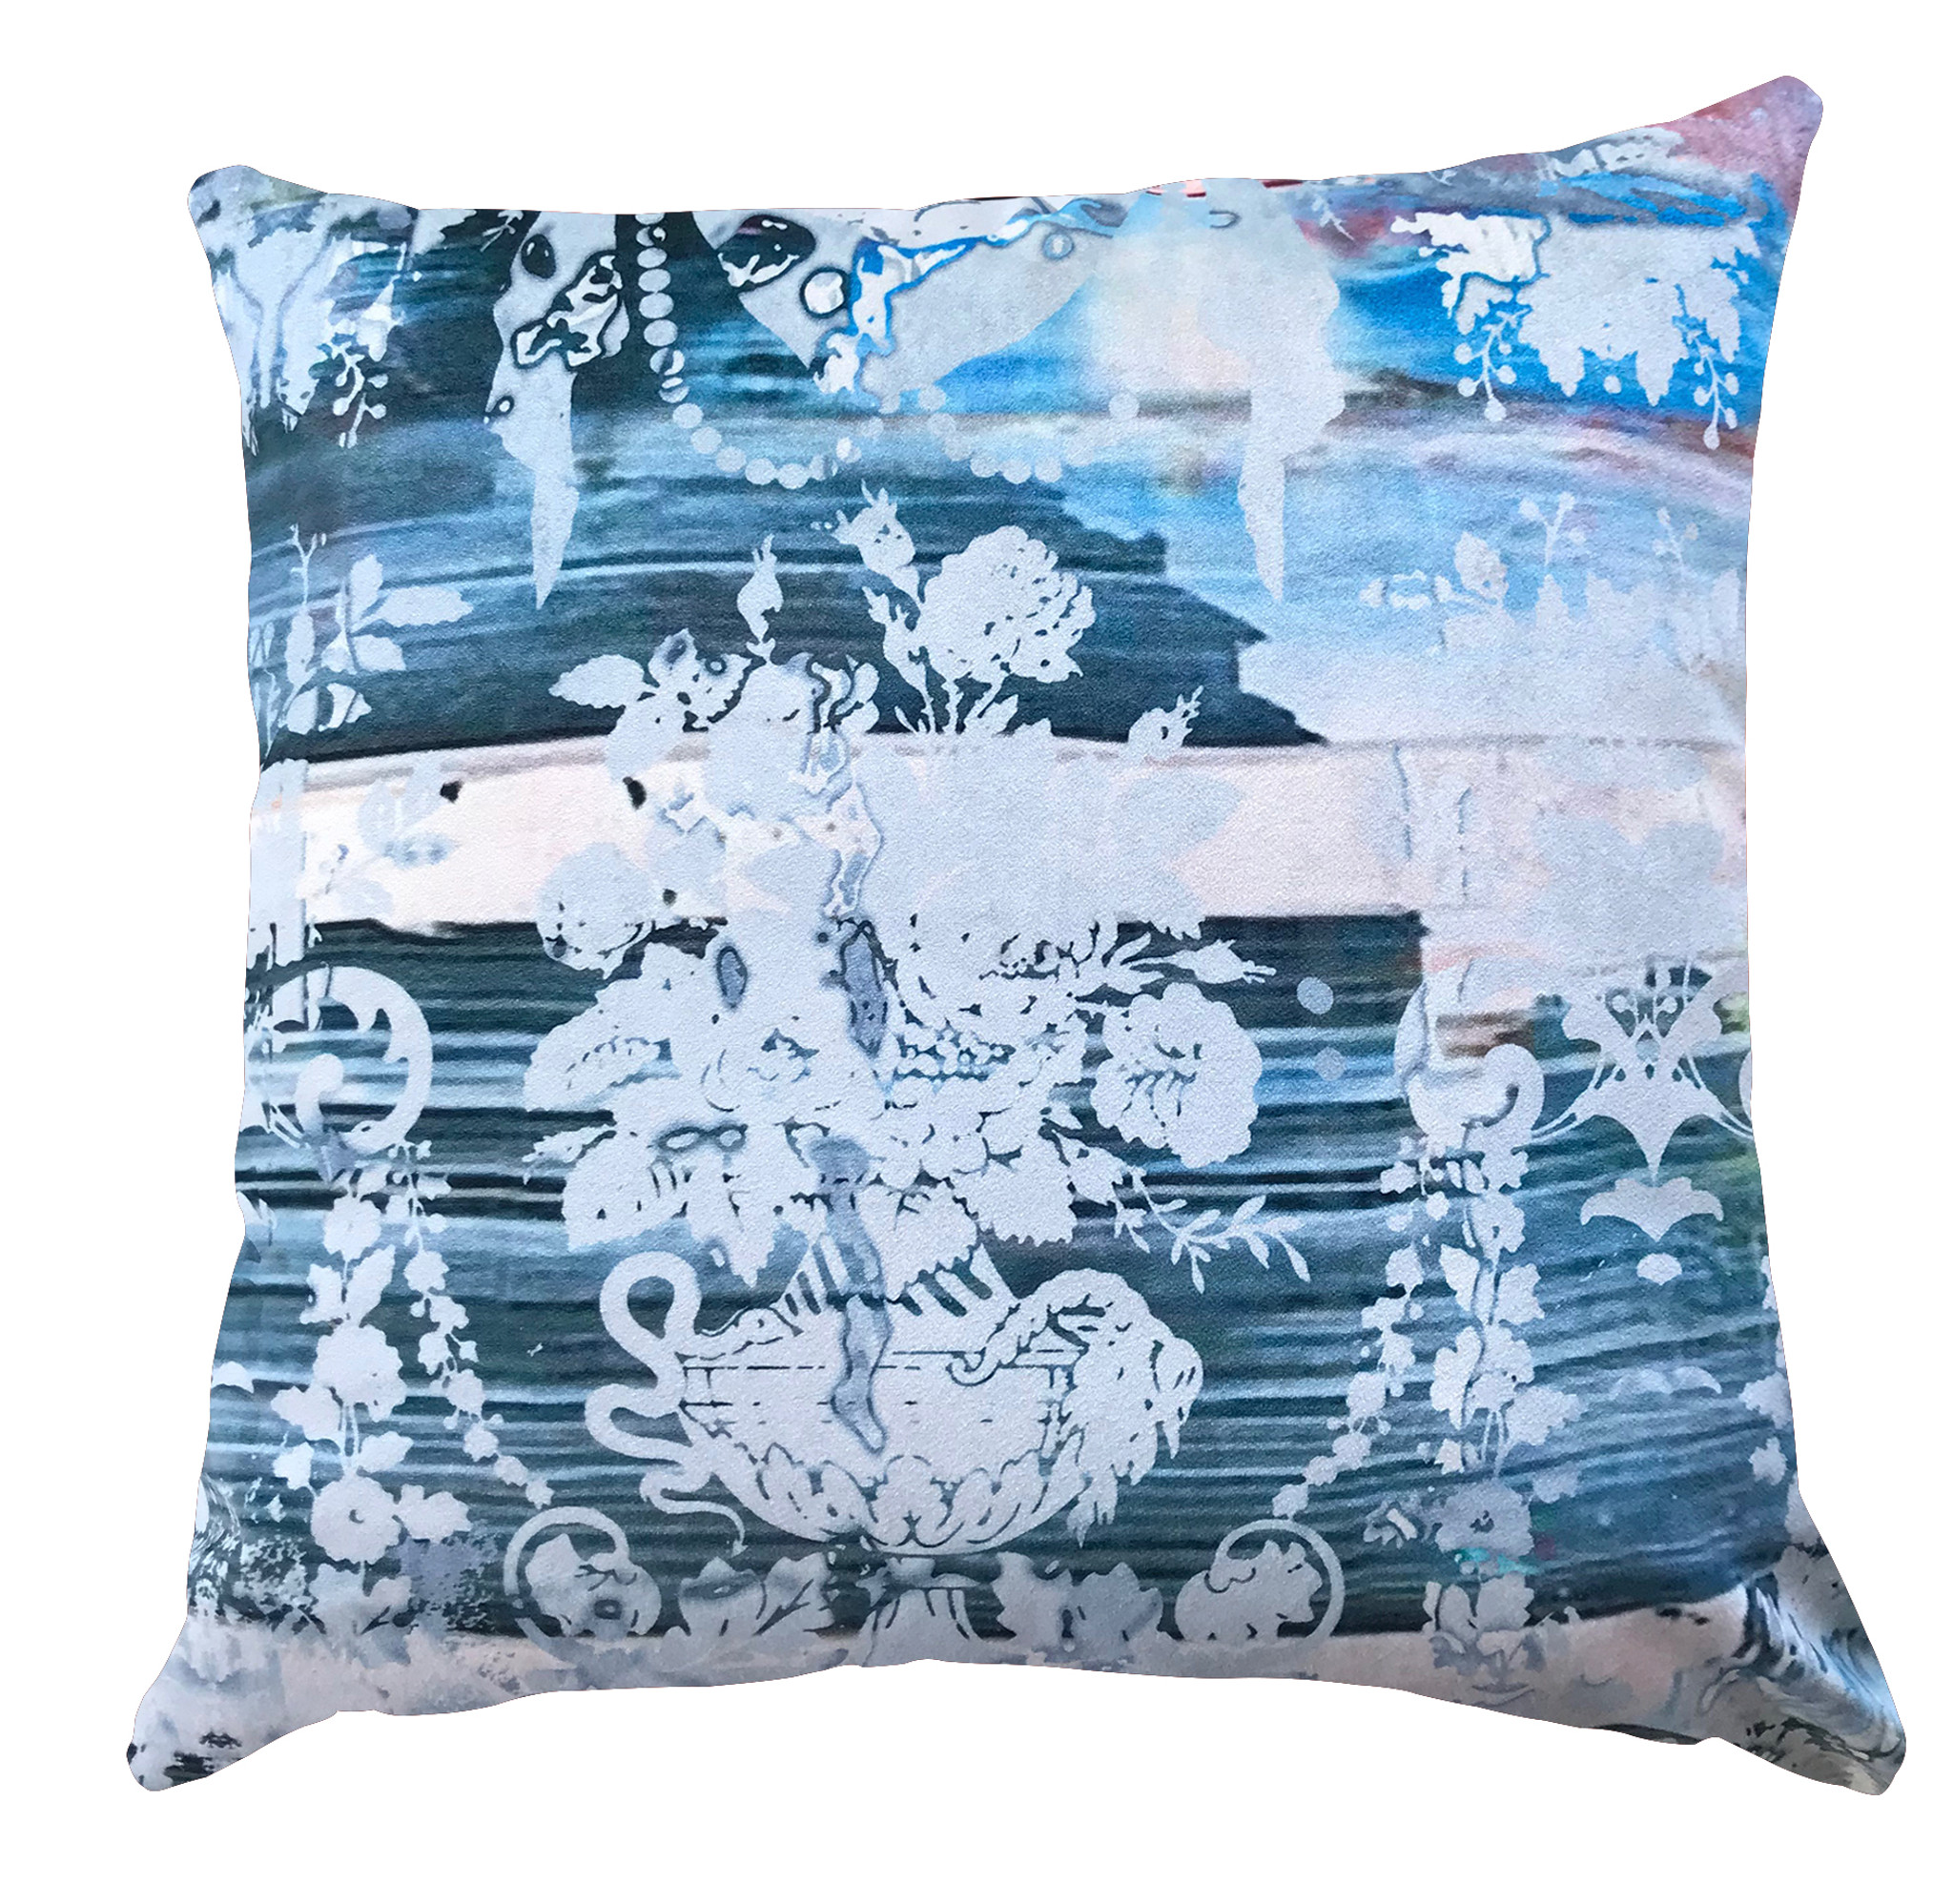 Cushion Cover - So Chic. So Intriguing